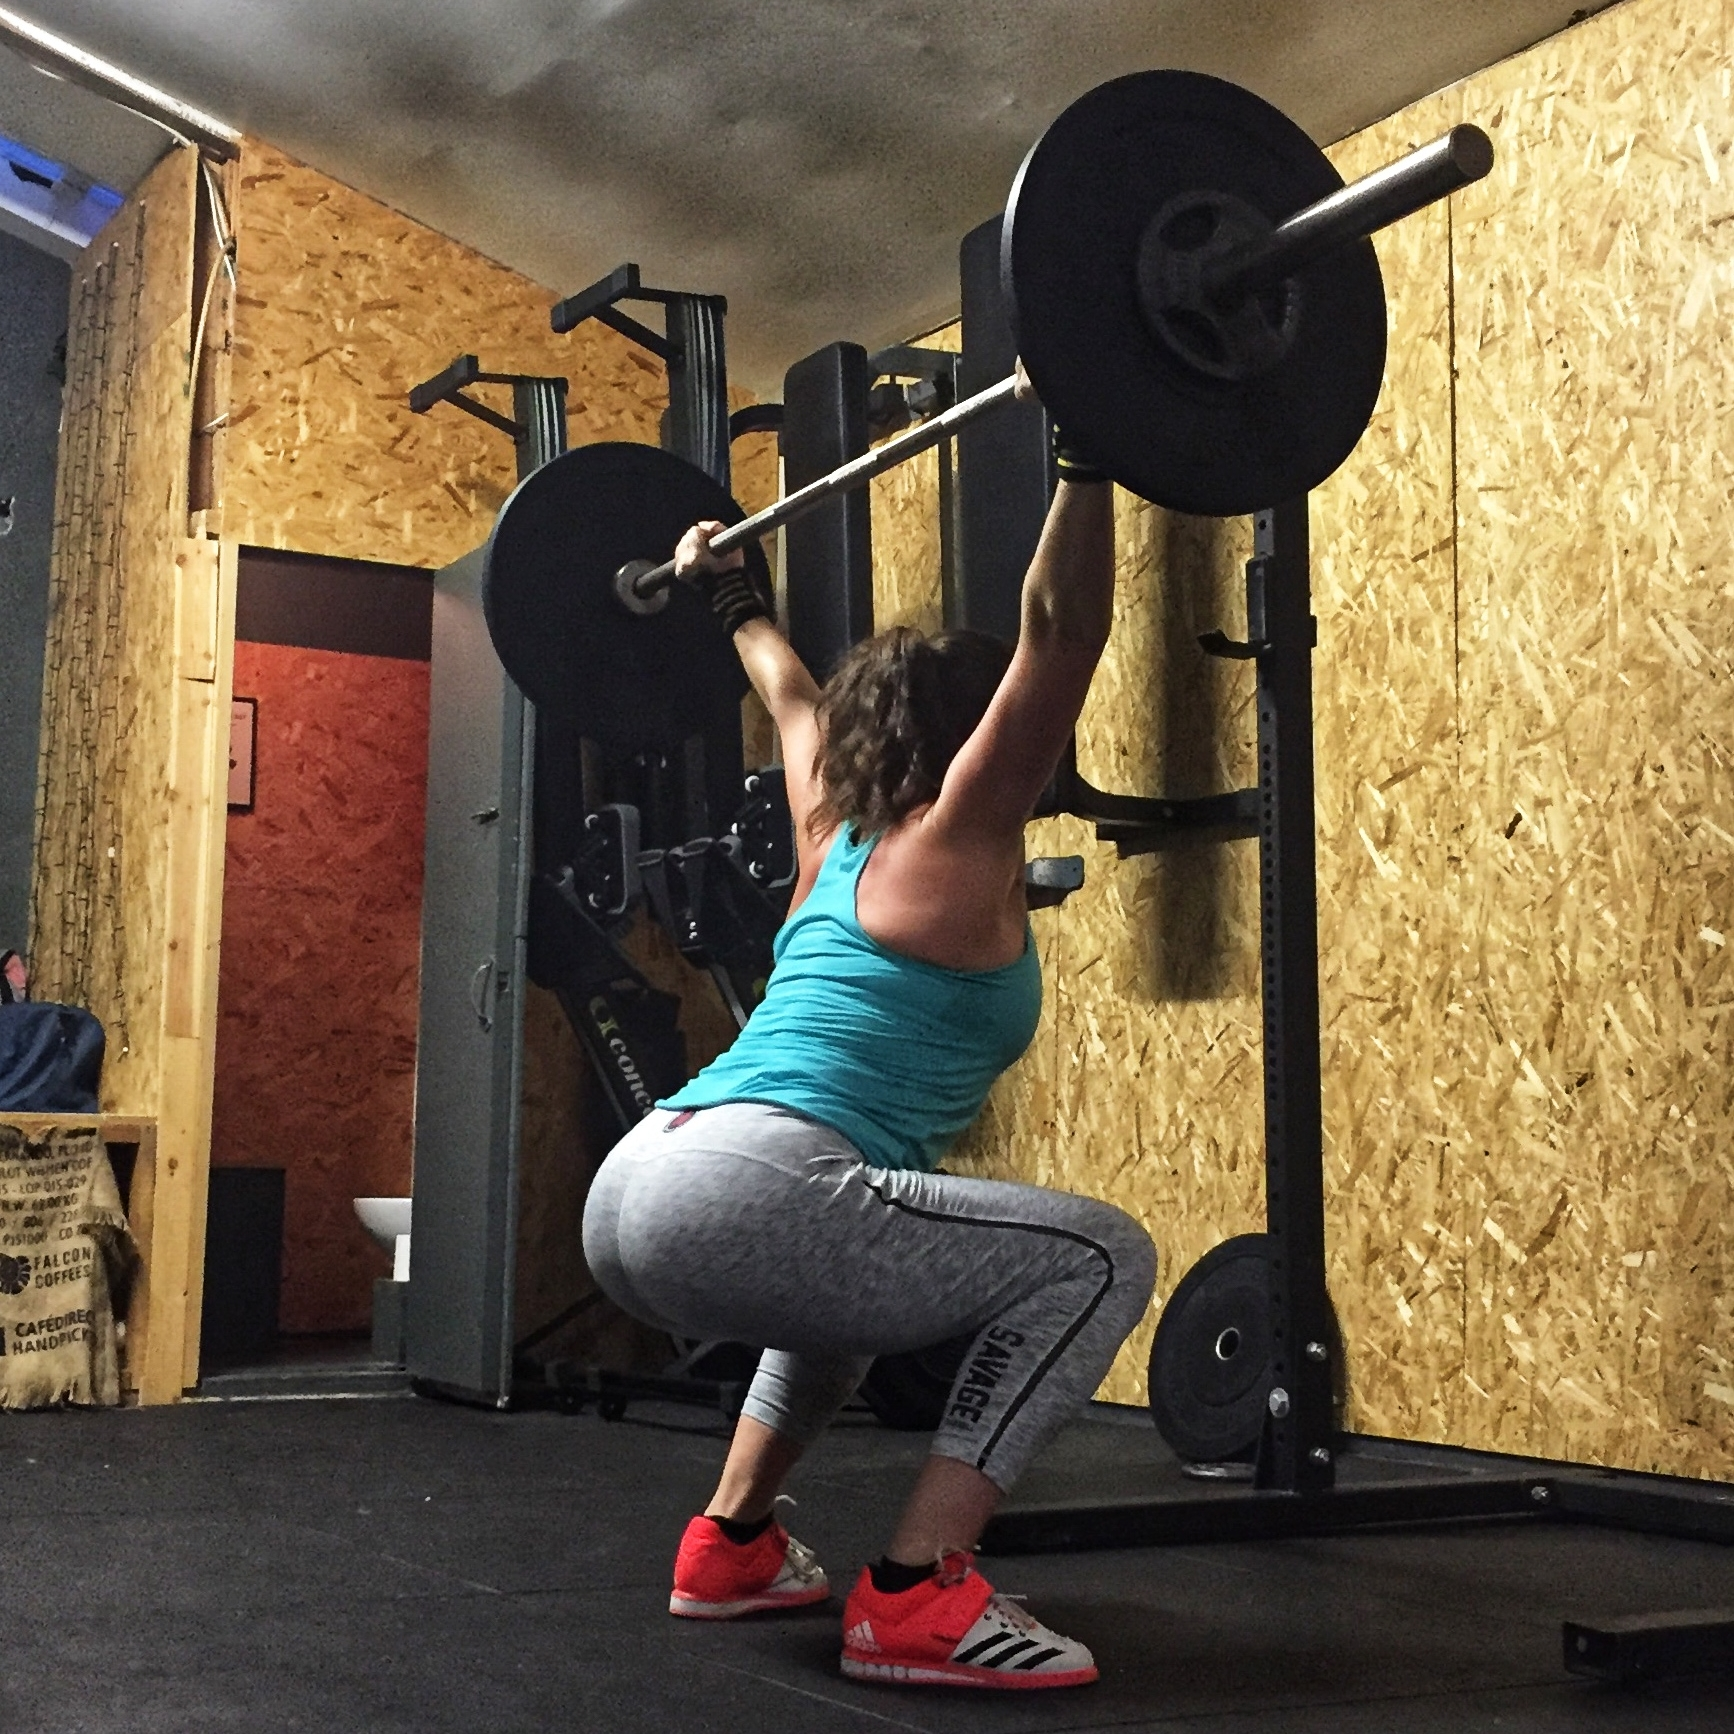 An Overhead Squat. One of the many challenging movements I never imagined I could do.